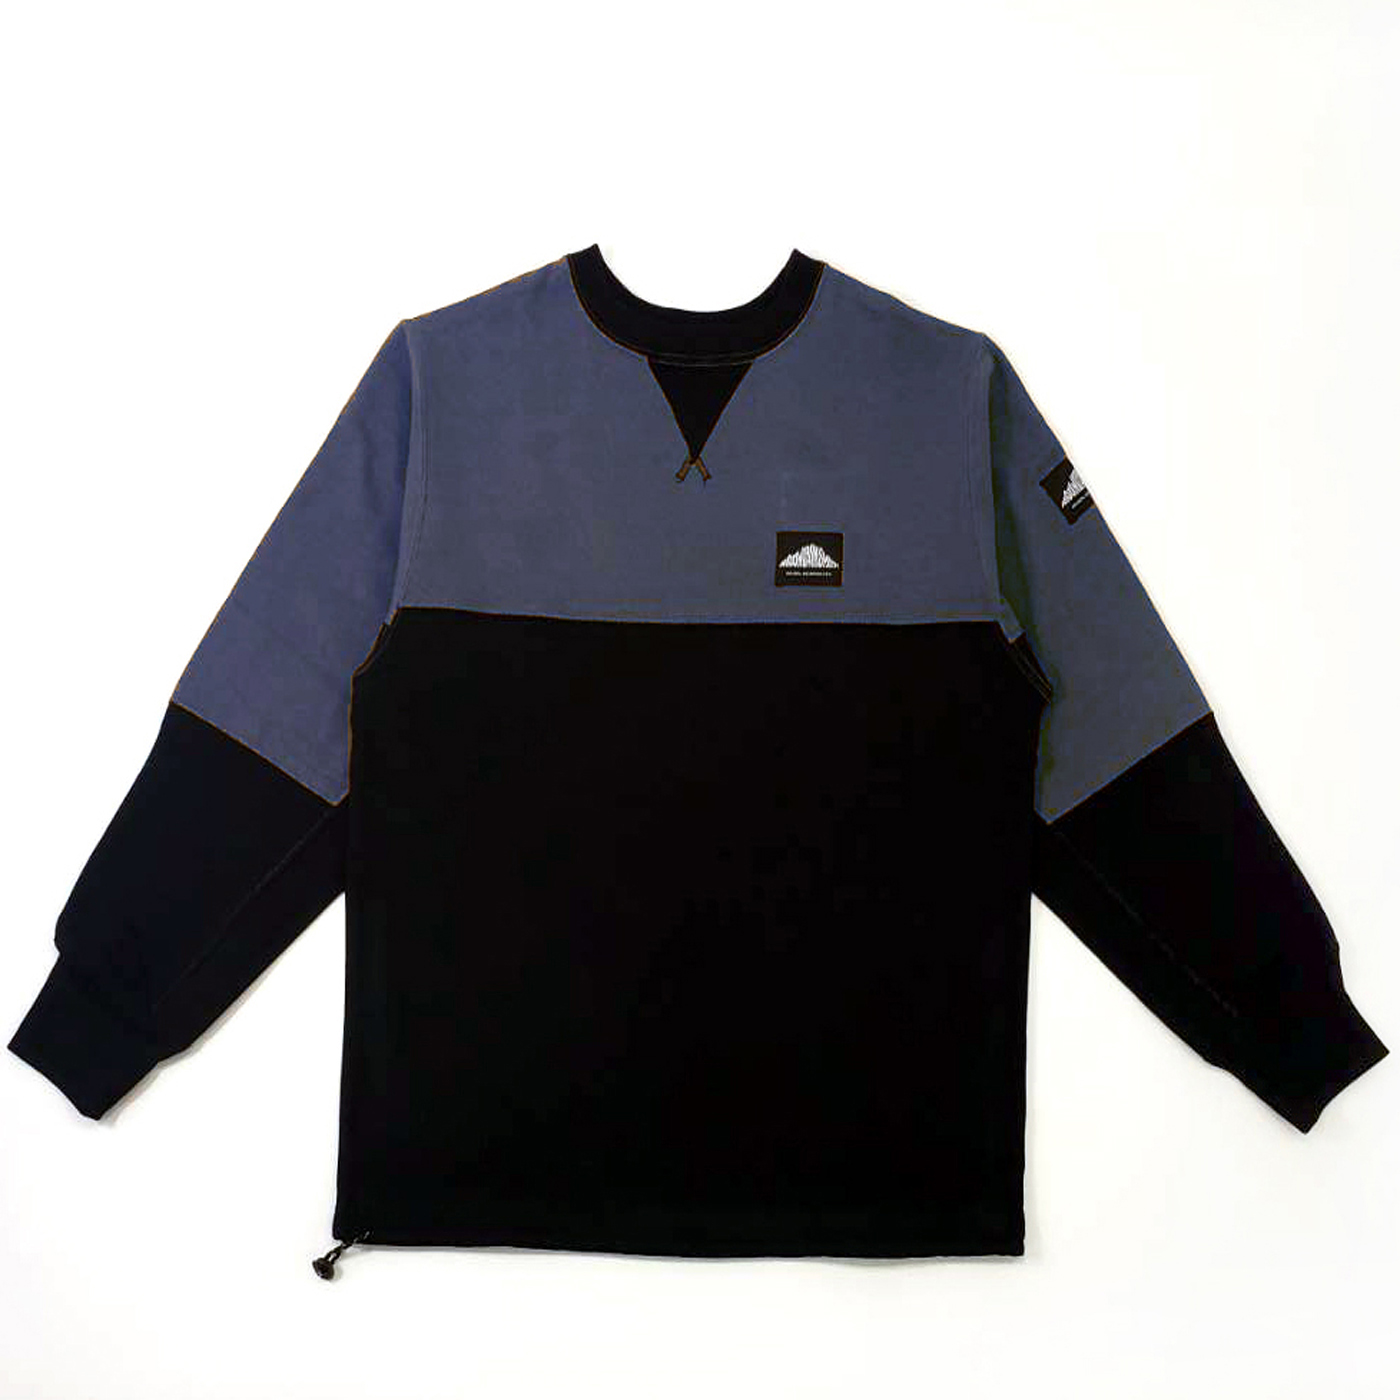 product: Evans Recycled Crew / color: NAVY 1